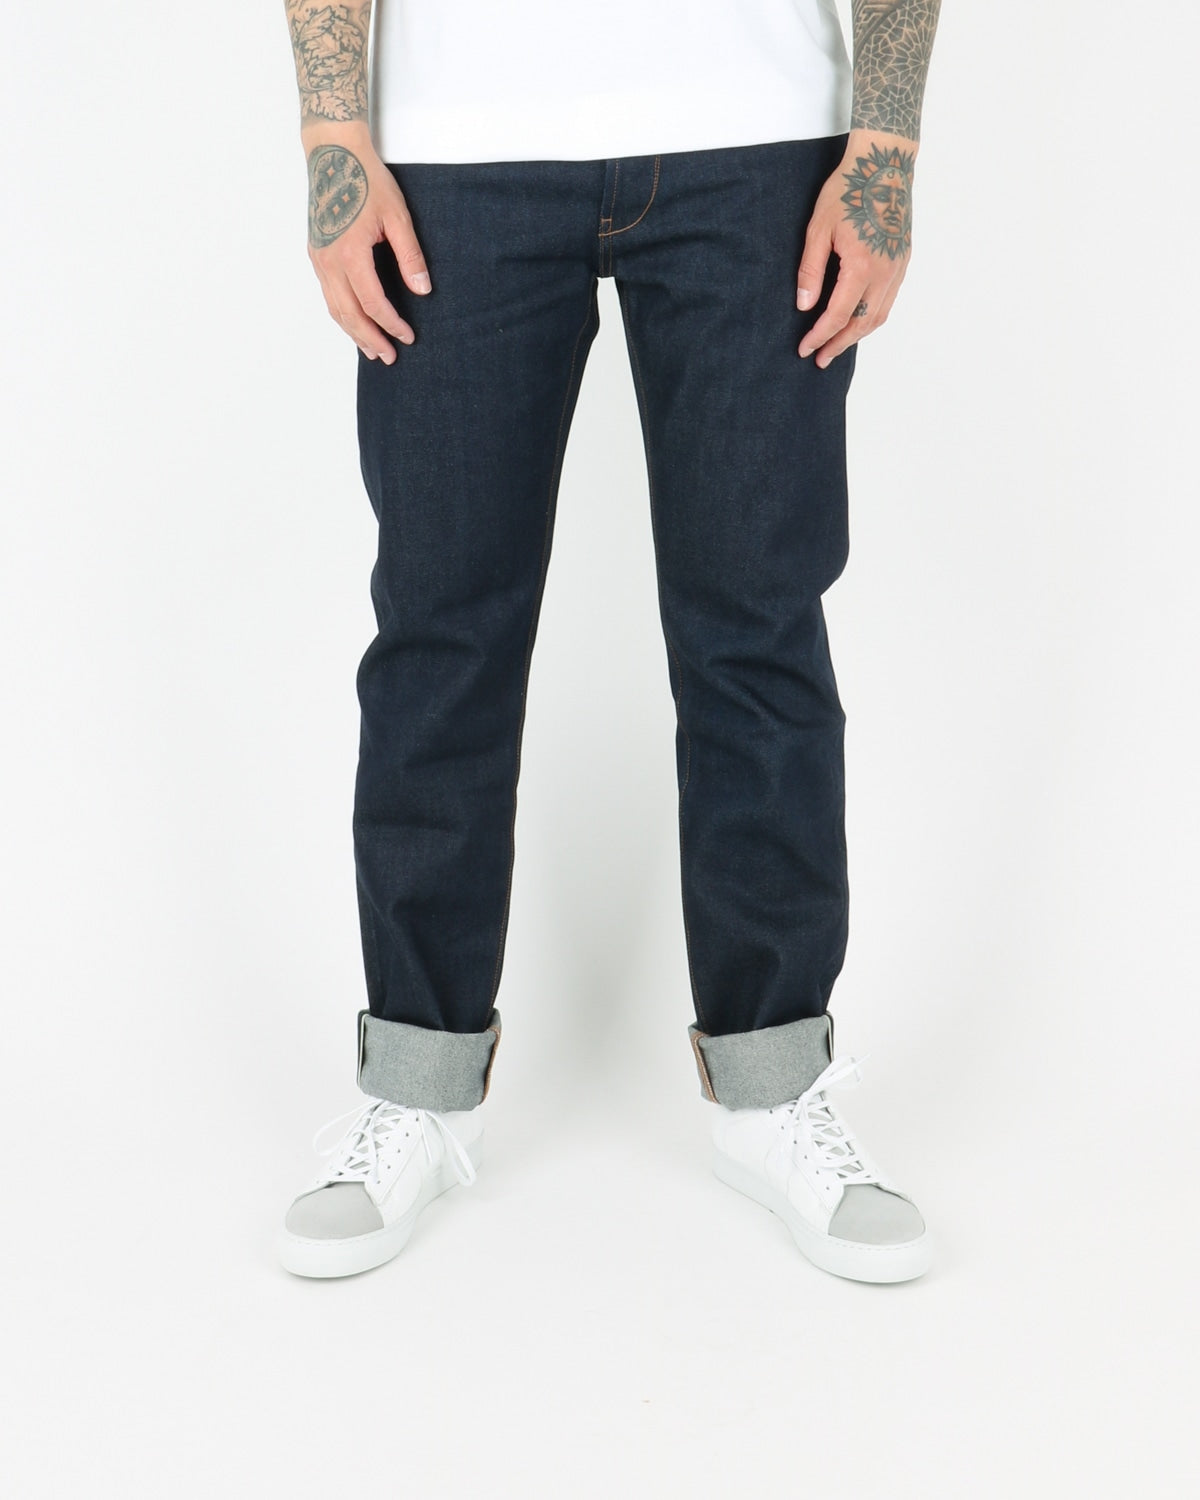 han kjobenhavn_tapered jeans_dark blue raw_view_1_3